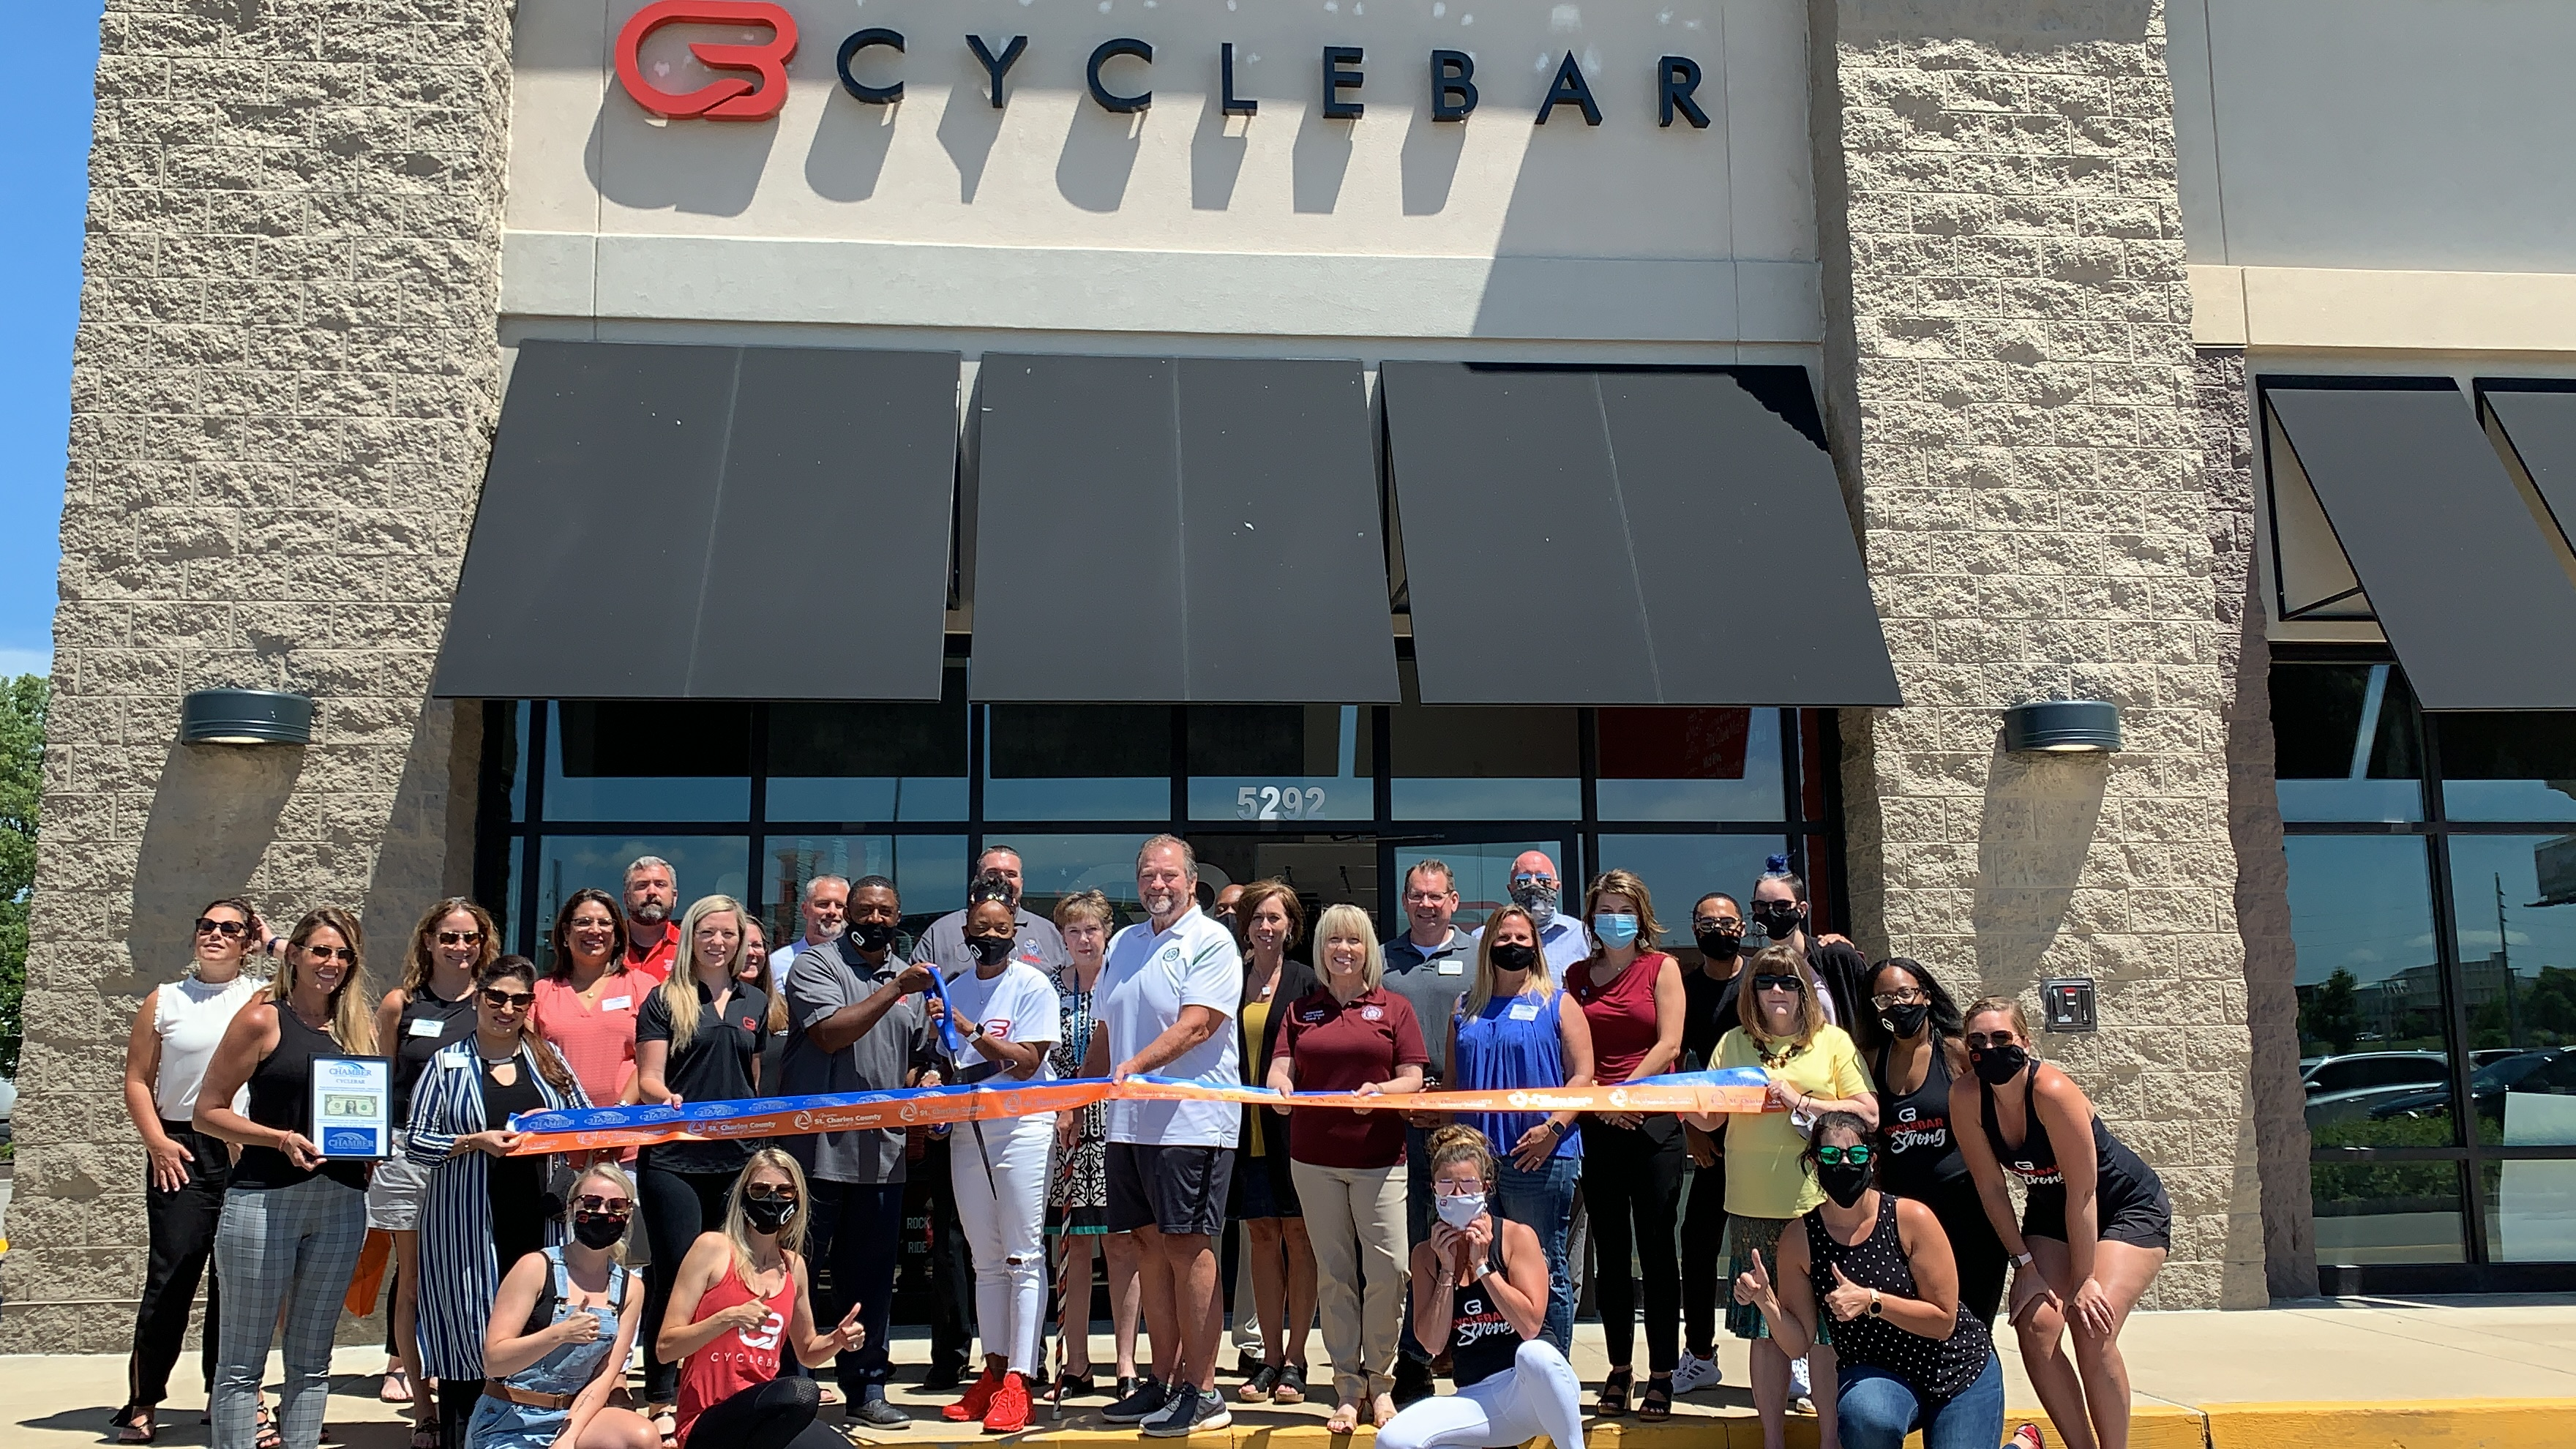 CycleBar Mid Rivers Celebrates Grand Opening with Ribbon Cutting